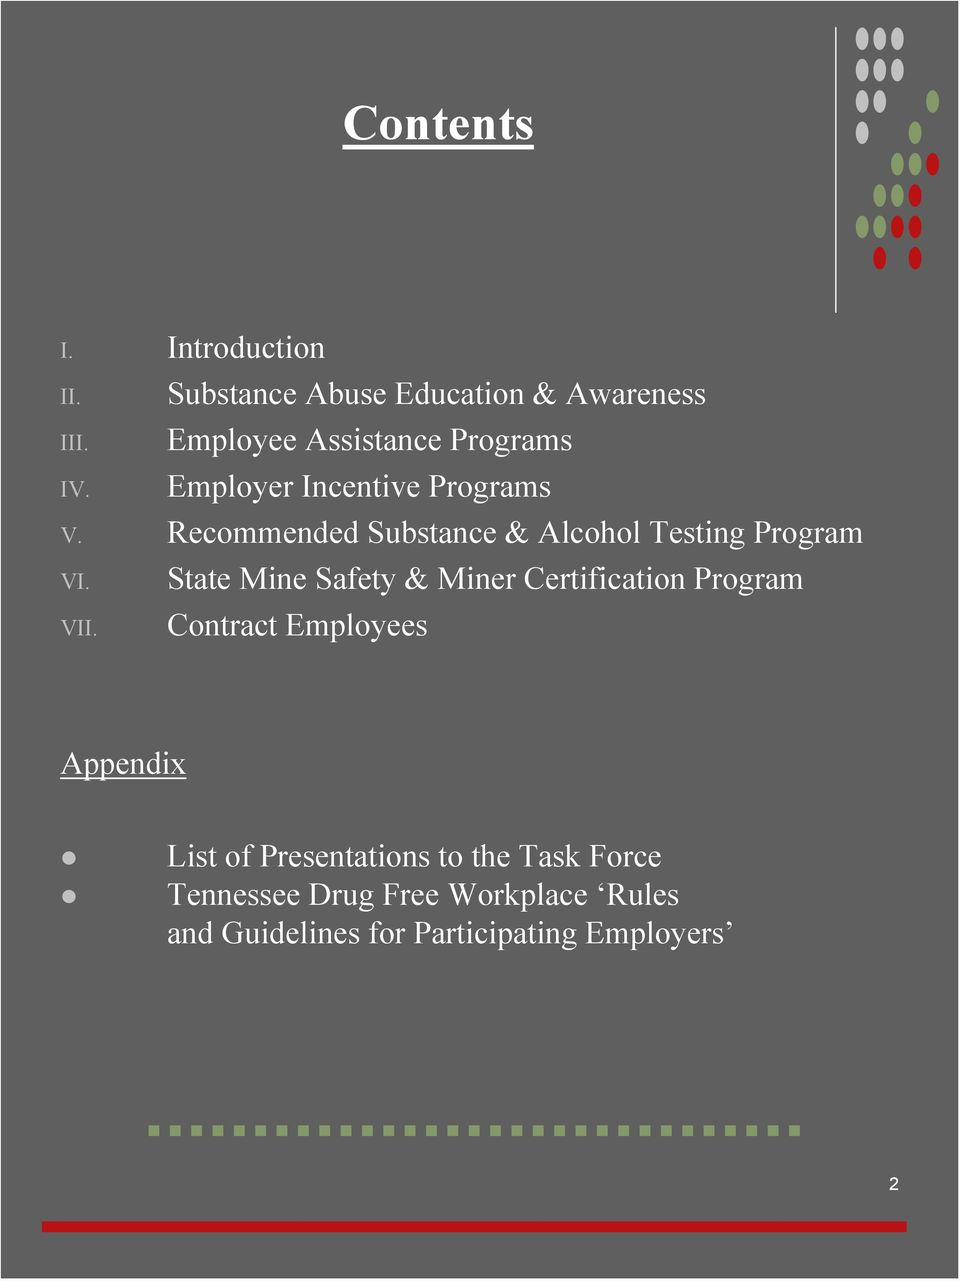 Recommended Substance & Alcohol Testing Program VI. VII.